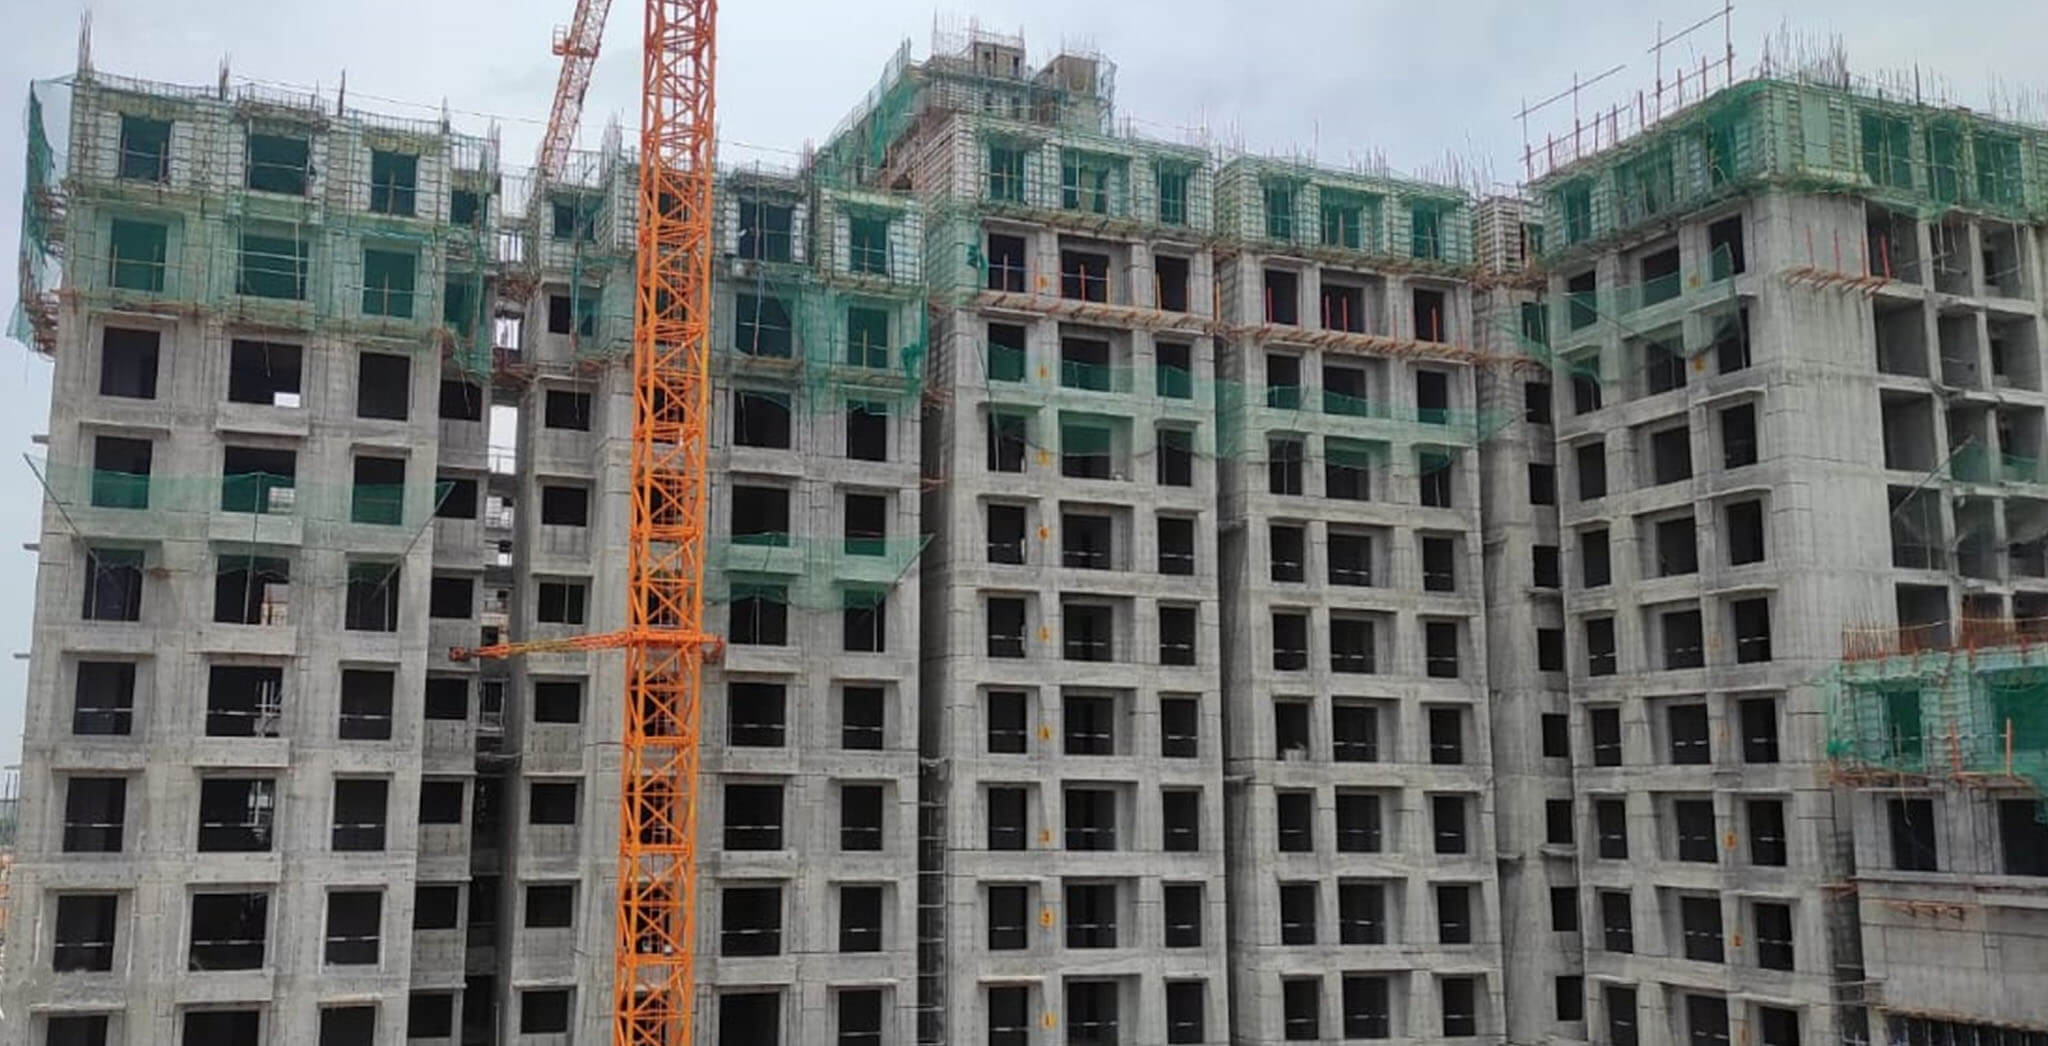 Jun 2021 - Helio: Wing A—On commencement of tenth floor slab